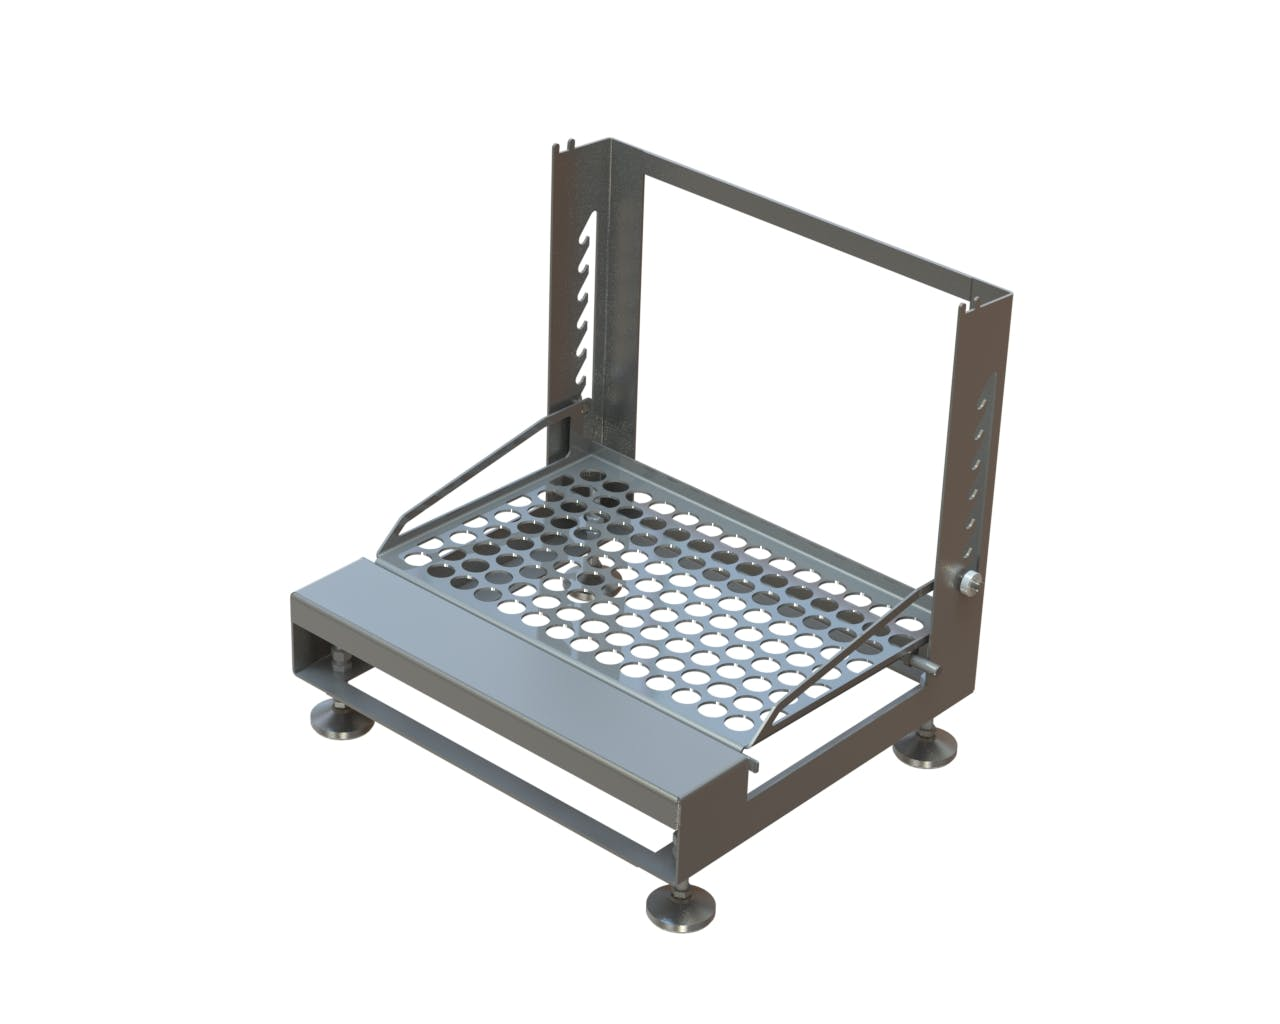 ERG-300 Ergonomic Stand Equipment stand sold by Fusion Tech Integrated Inc.